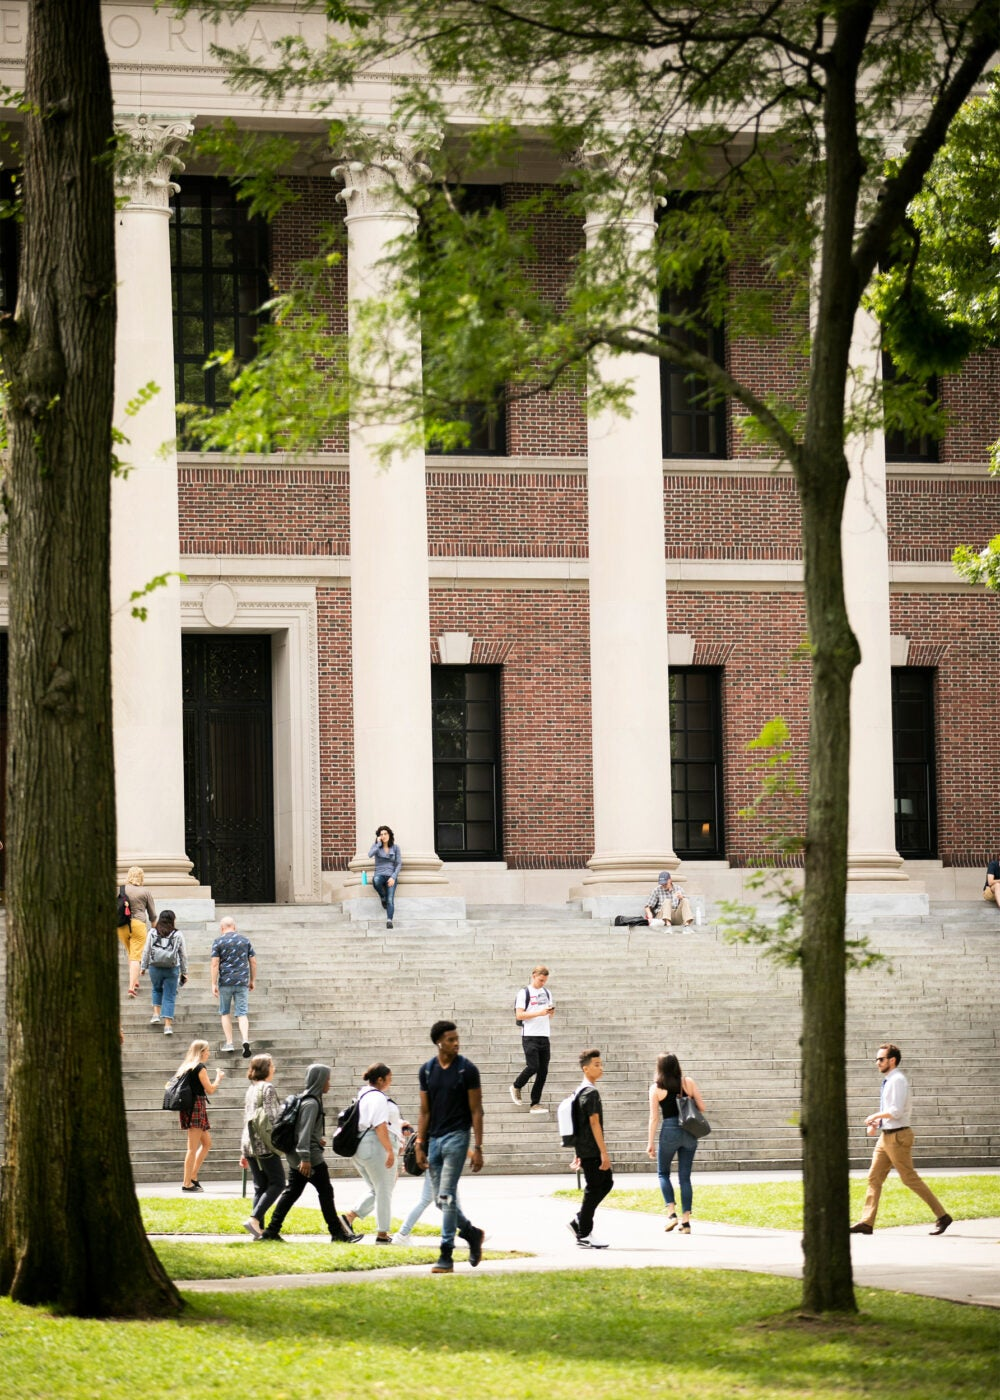 Students flow in and out of Widener Library.